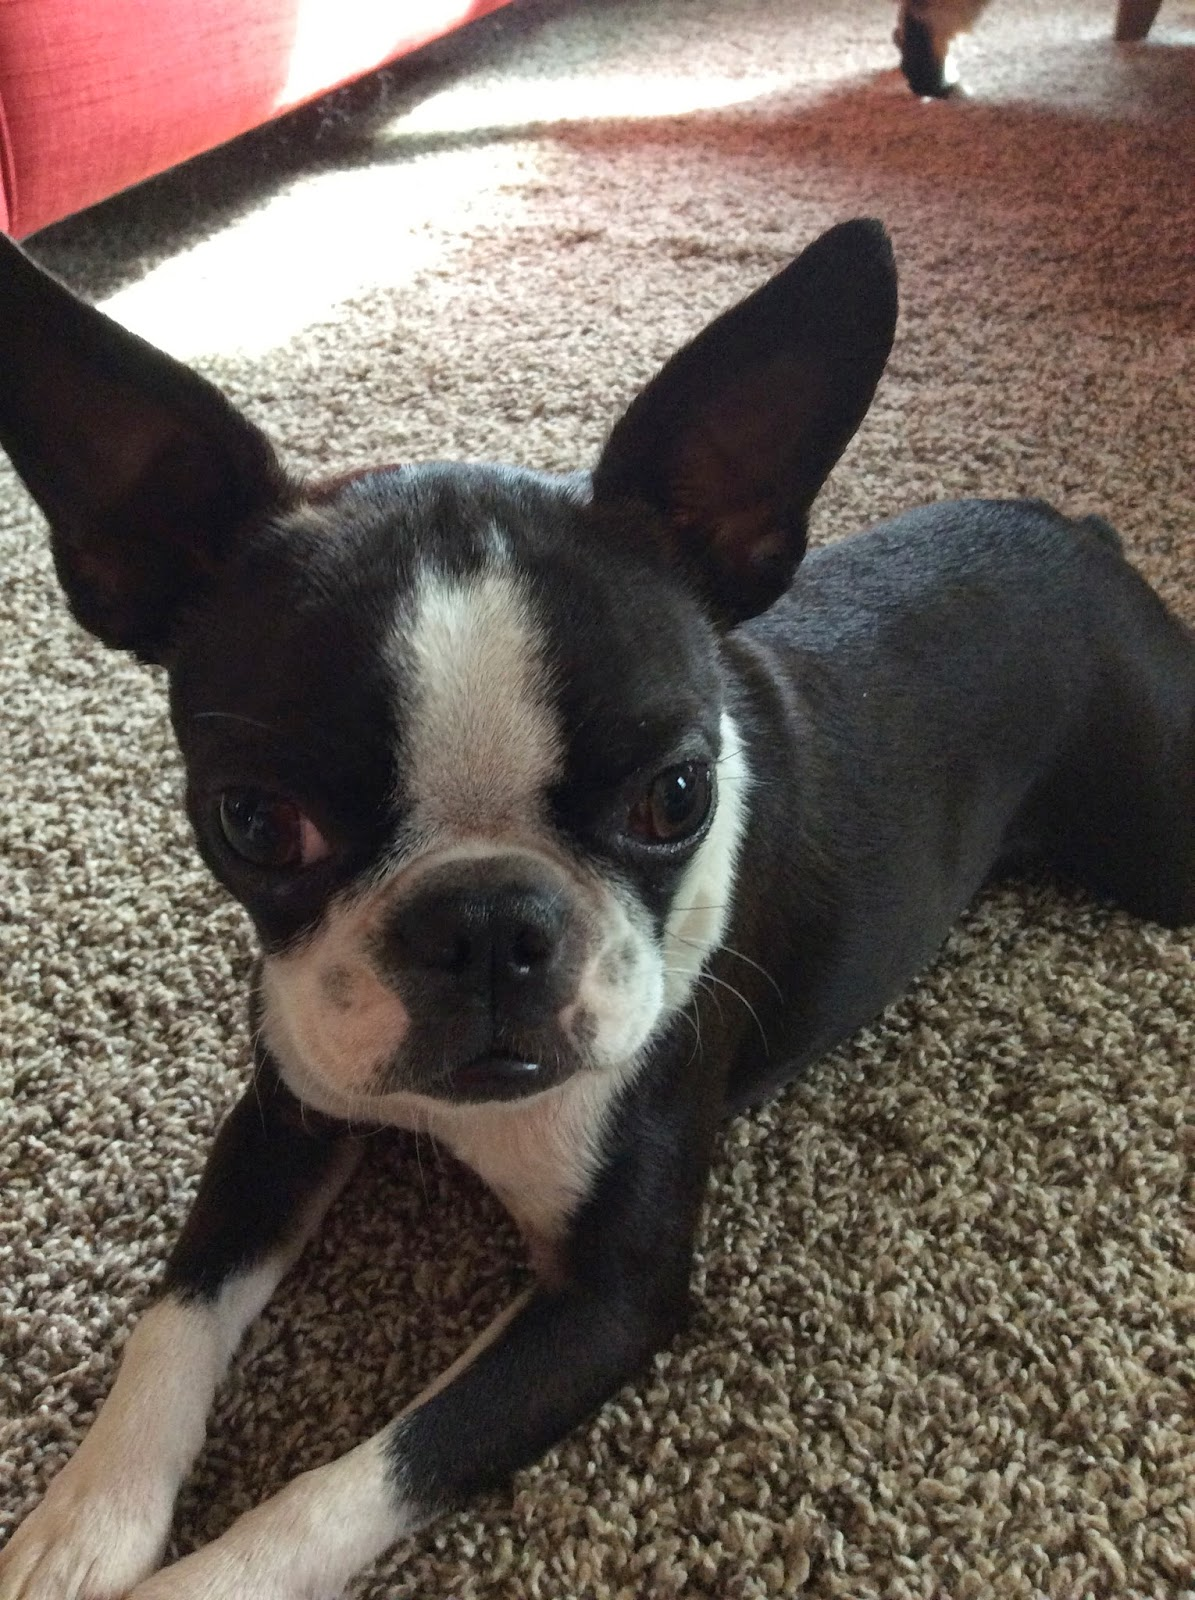 Sinead the Boston terrier has huge ears